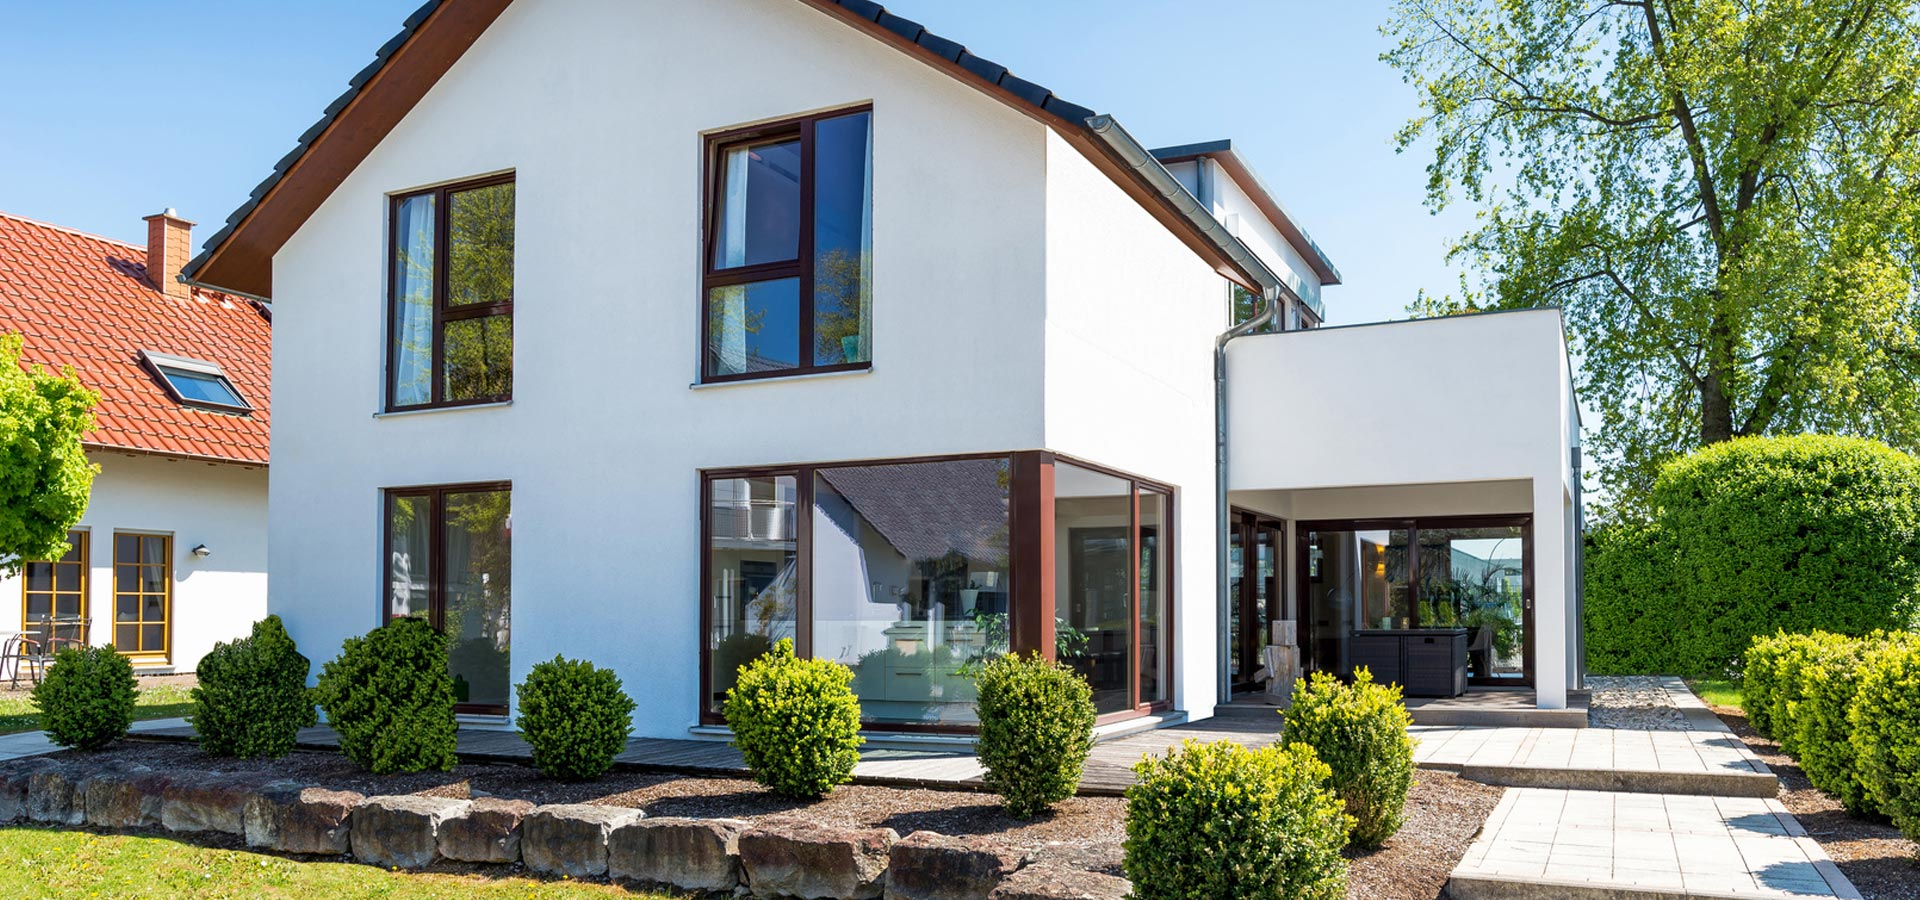 House sale from A-Z: The 8+ most important tips for Flörsheim am Main